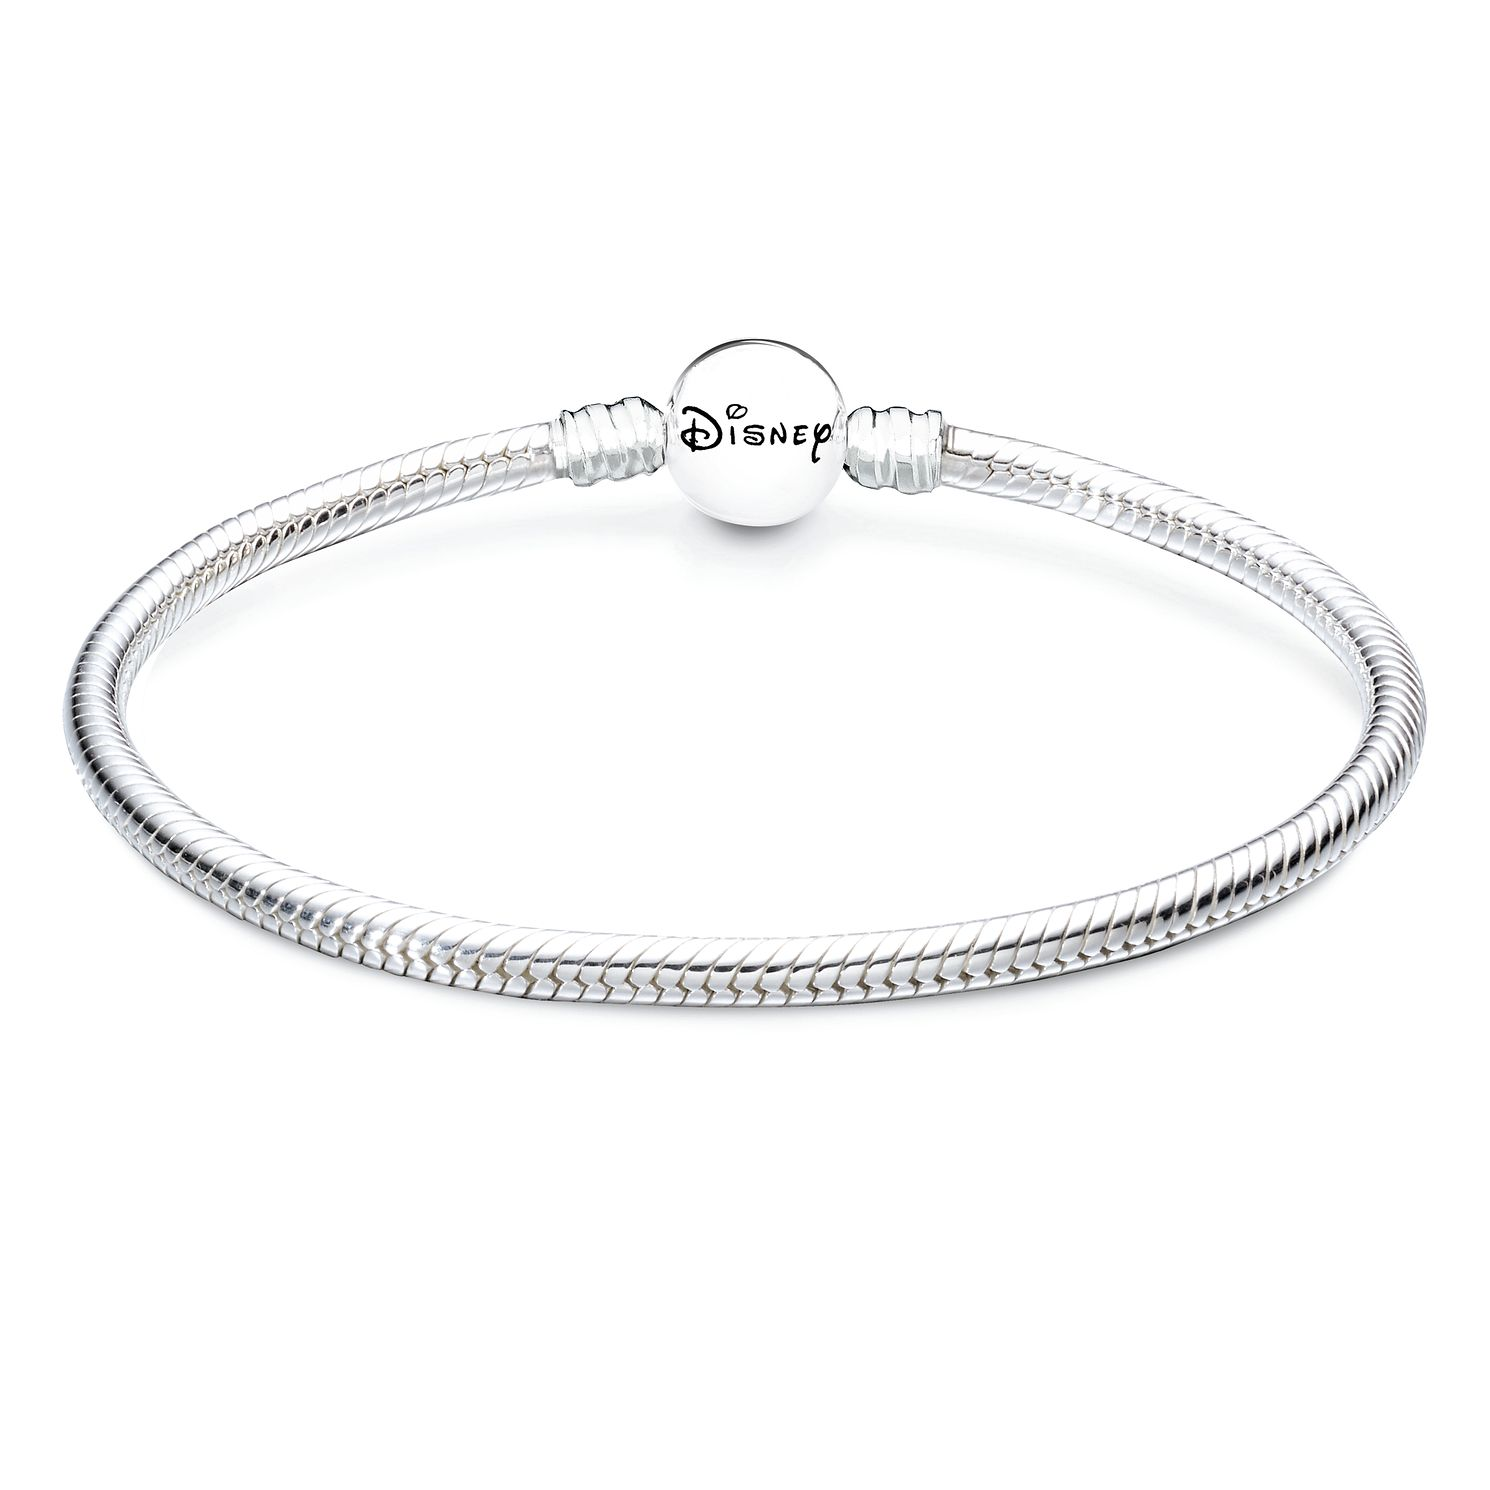 Chamilia Disney Snake Chain Bracelet - Product number 8180989